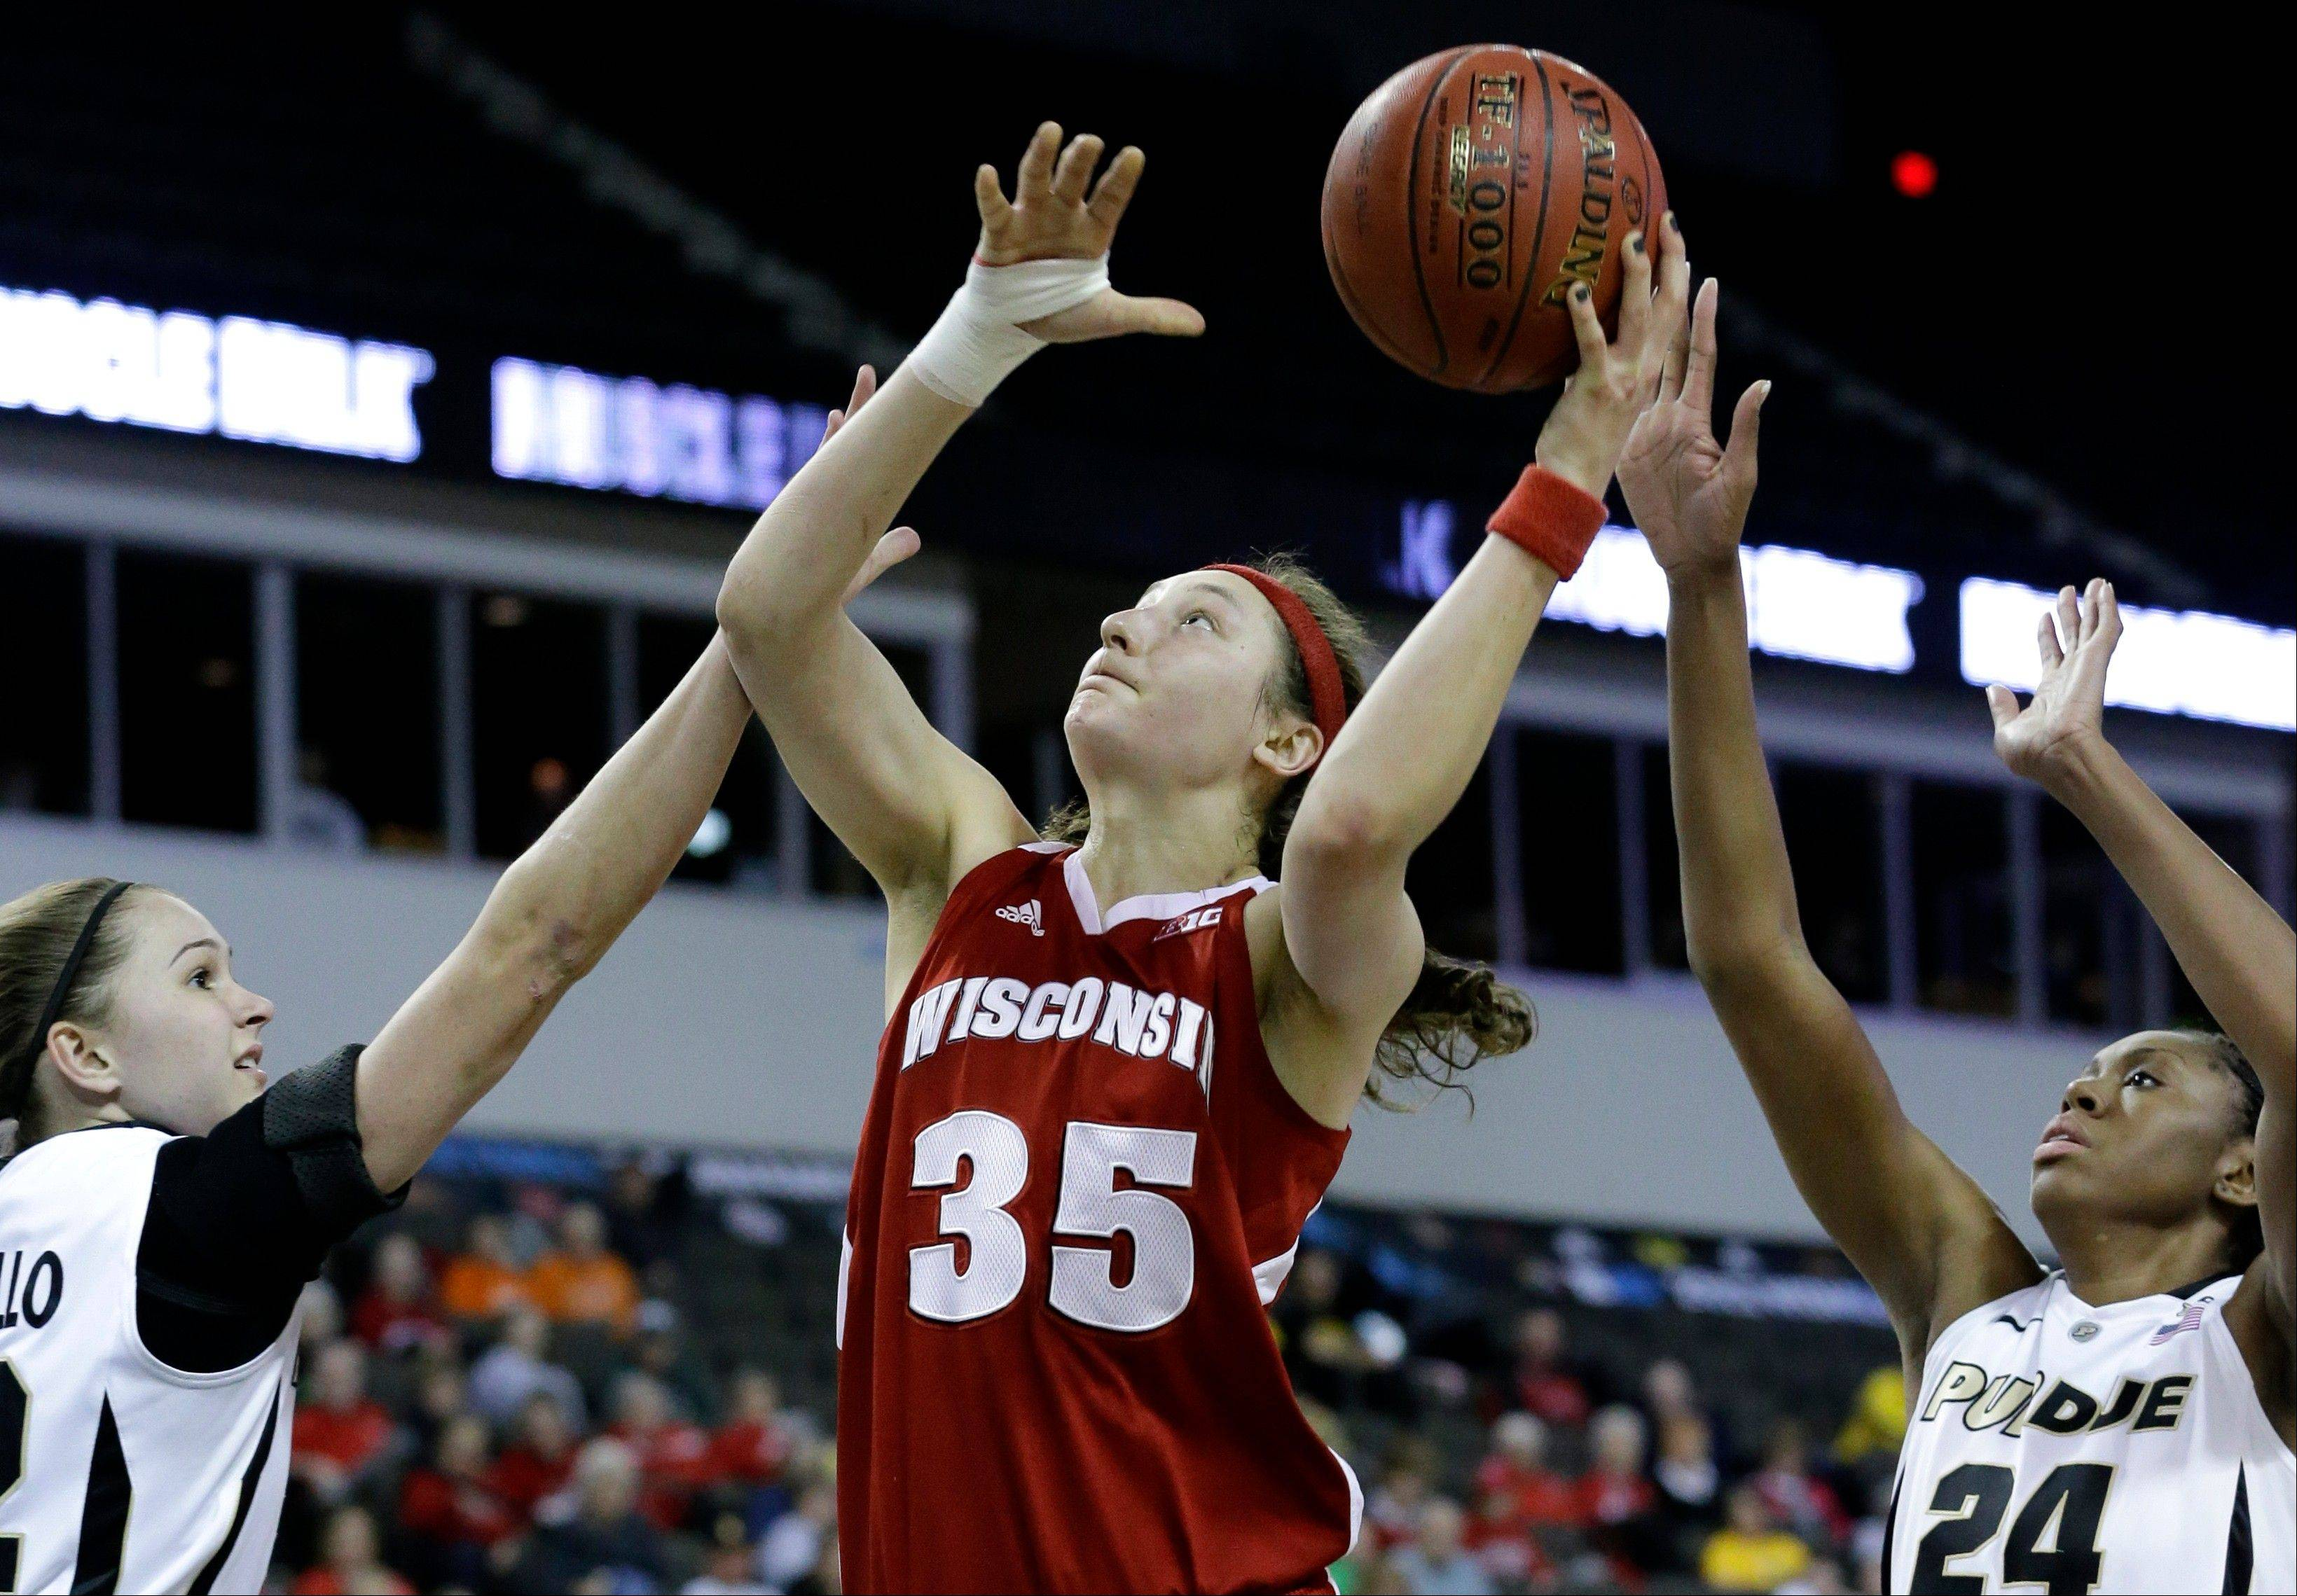 Wisconsin forward Jacki Gulczynski (35) shoots against Purdue forward Sam Ostarello, left, and Drey Mingo, right, during the first half of an NCAA college basketball game in the Big Ten Conference tournament in Hoffman Estates, Ill., on Friday, March 8, 2013.